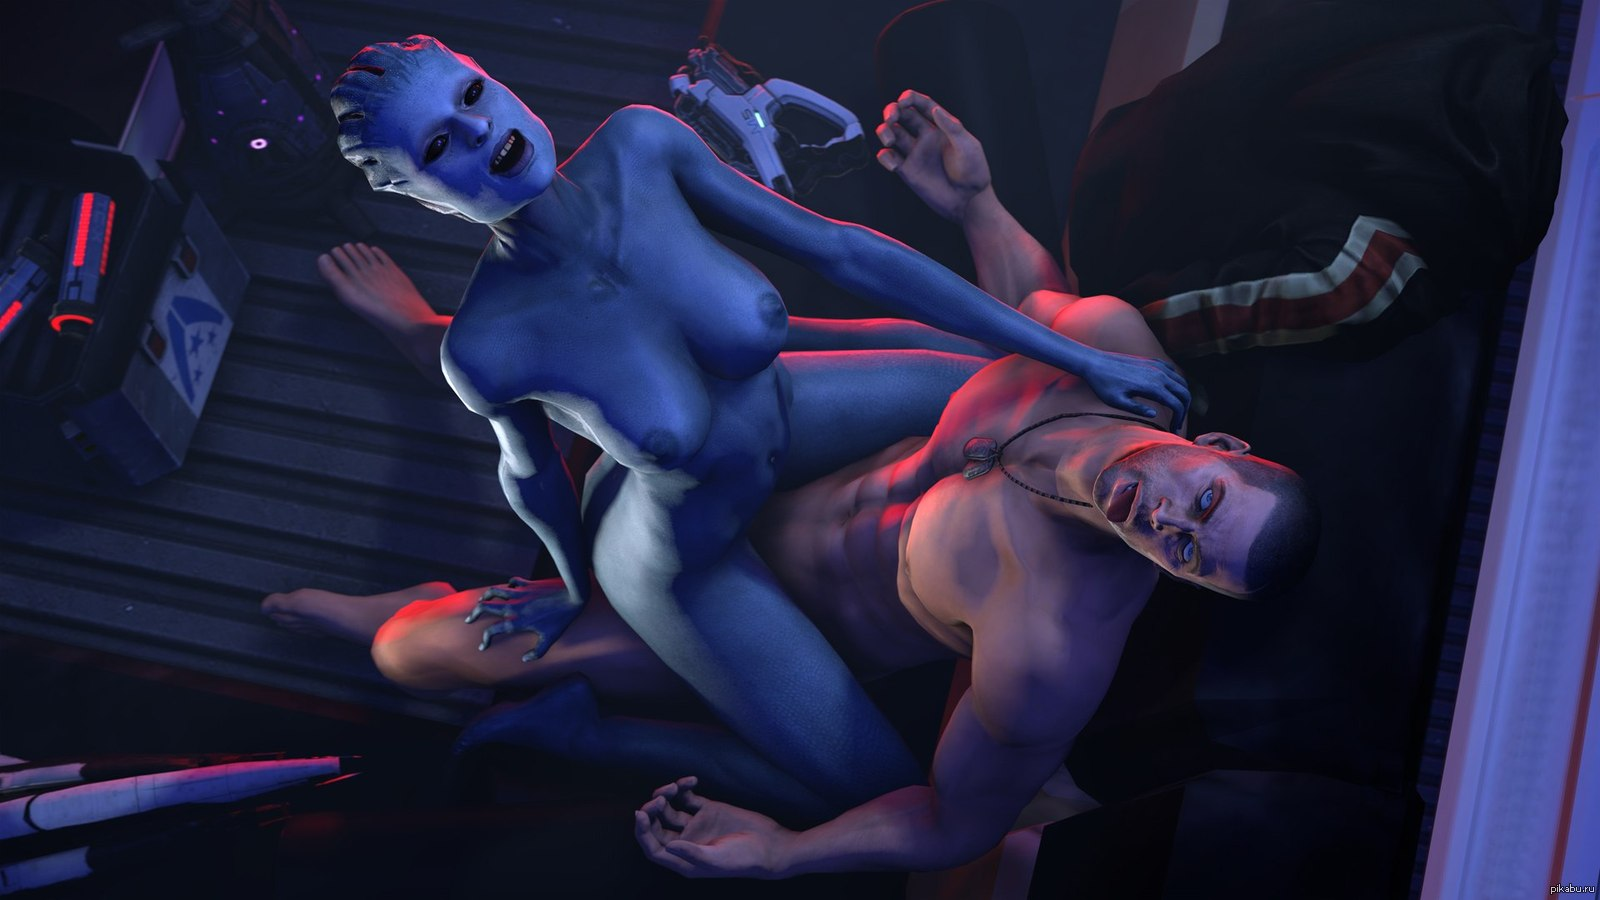 Naked mass effect characters pics pron photos